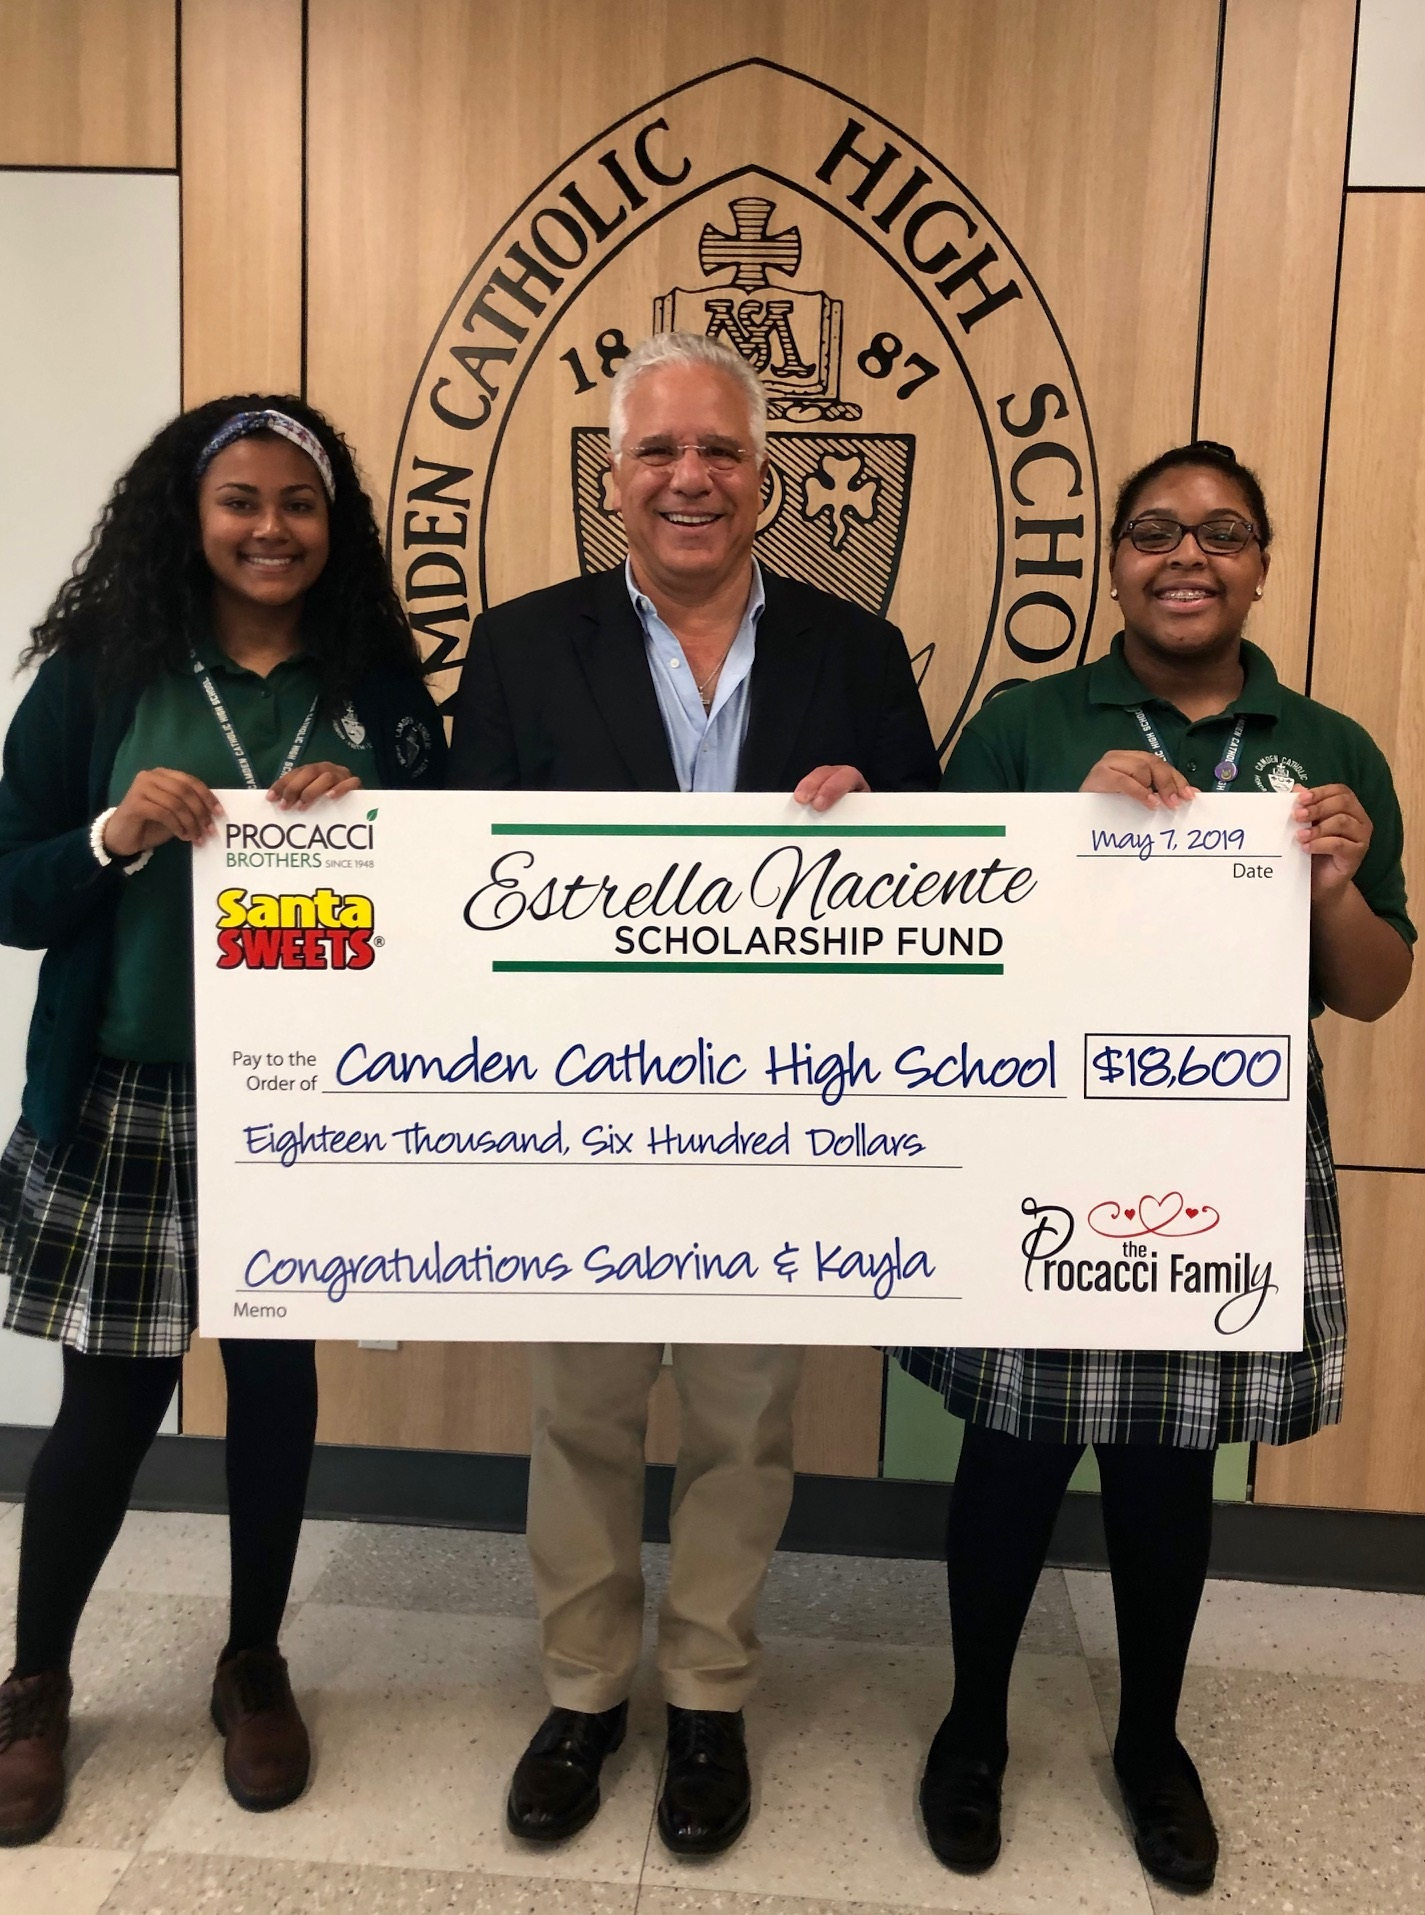 Camden Catholic High School 2019 - Procacci Brother's Estrella Naciente Scholarship Fund donated $18,600 this year to two outstanding freshman, Sabrina and Kayla. Procacci Holdings' CEO and Camden Catholic alumnus, J.M. Procacci, presented the scholarship to the students at a ceremony in front of their classmates, teachers, and families. Congratulations Sabrina & Kayla!